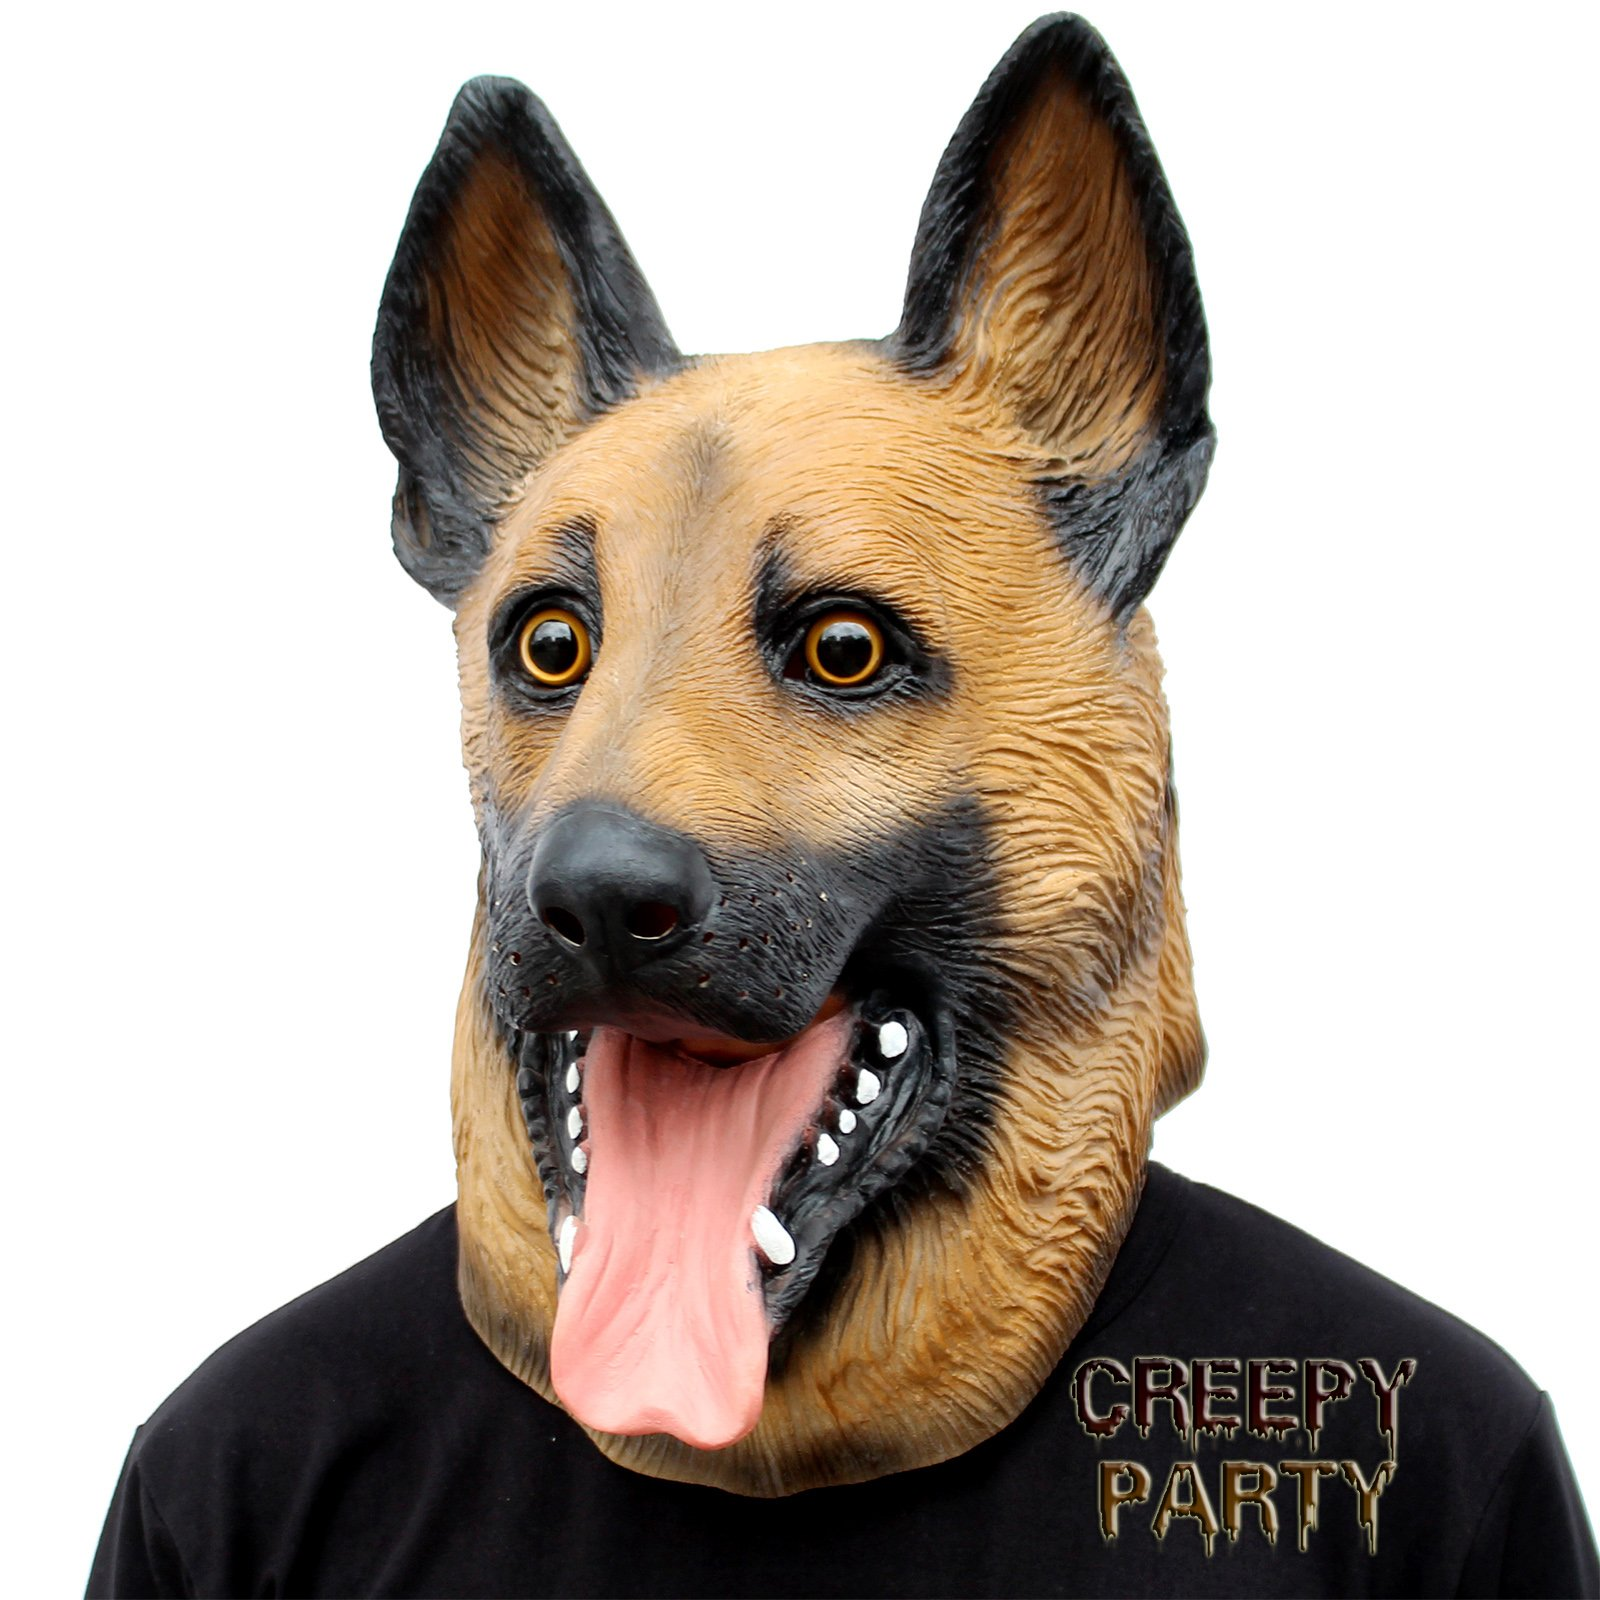 FREE SHIPPING new CreepyParty Dog Head Halloween Party Latex Animal Mask costume  sc 1 st  eBay & FREE SHIPPING new CreepyParty Dog Head Halloween Party Latex Animal ...